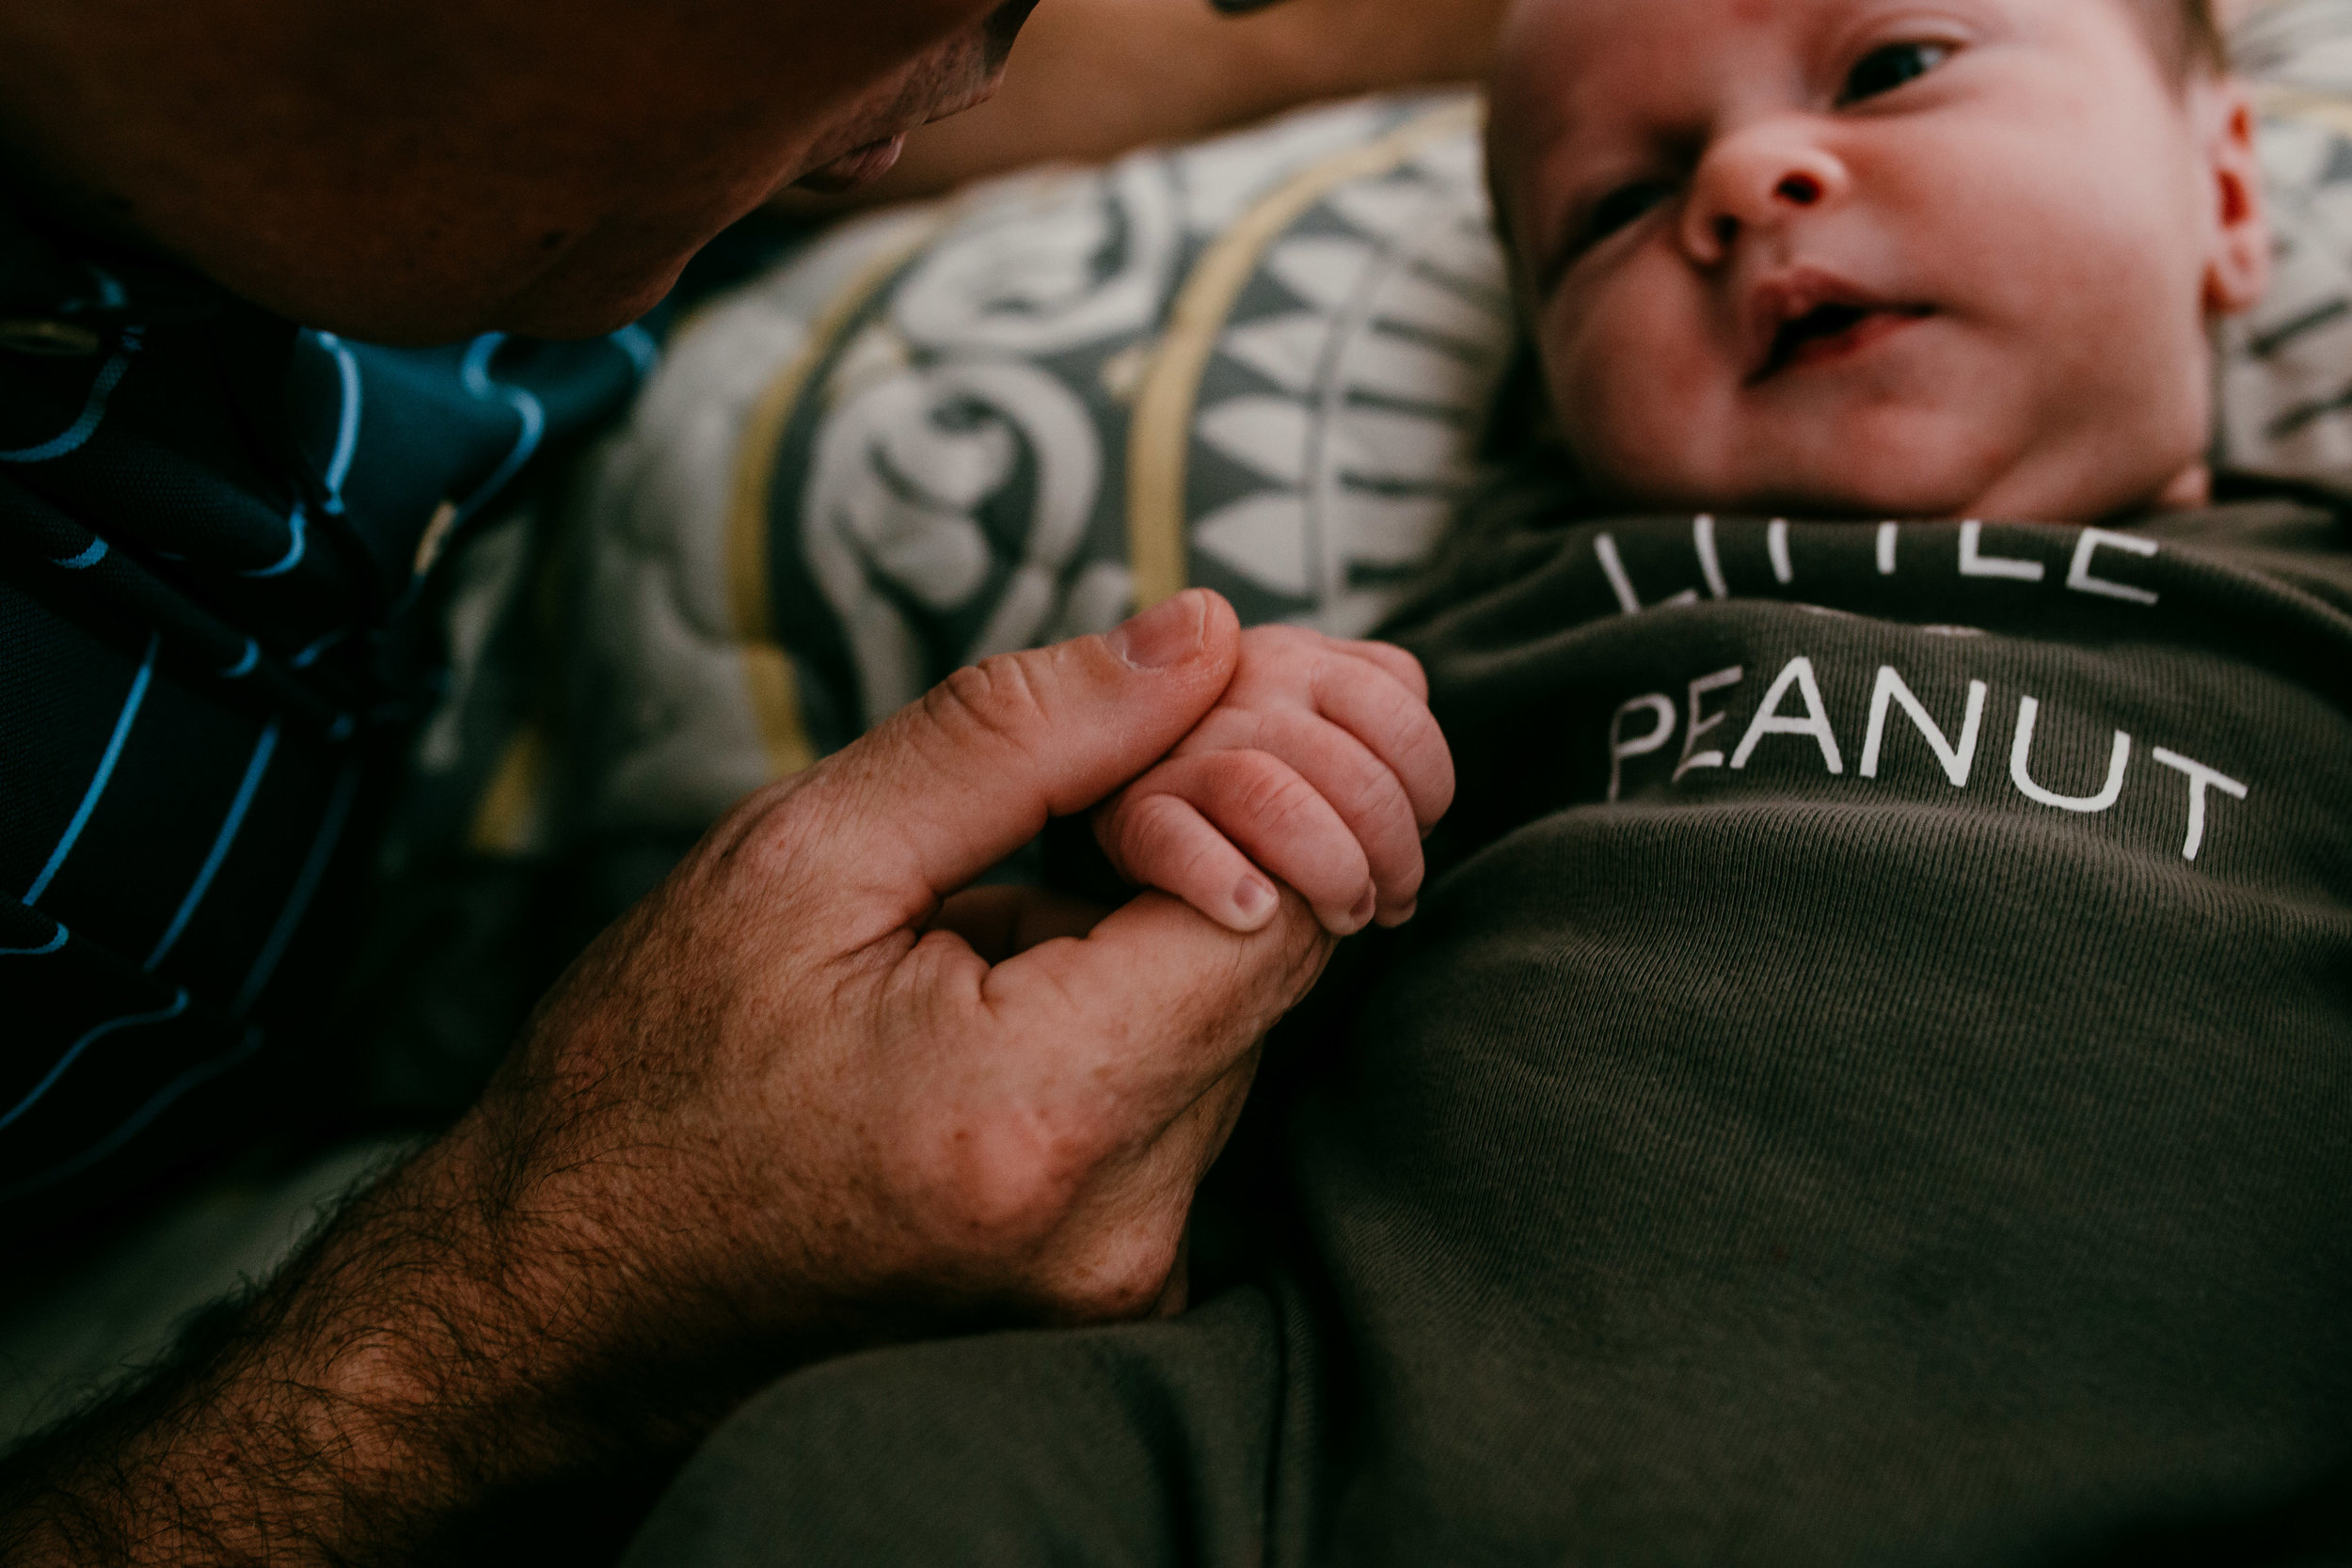 sweet moment with Dady and baby hands during an in home newborn session | Hanna Hill Photography | Raleigh birth family newborn photographer